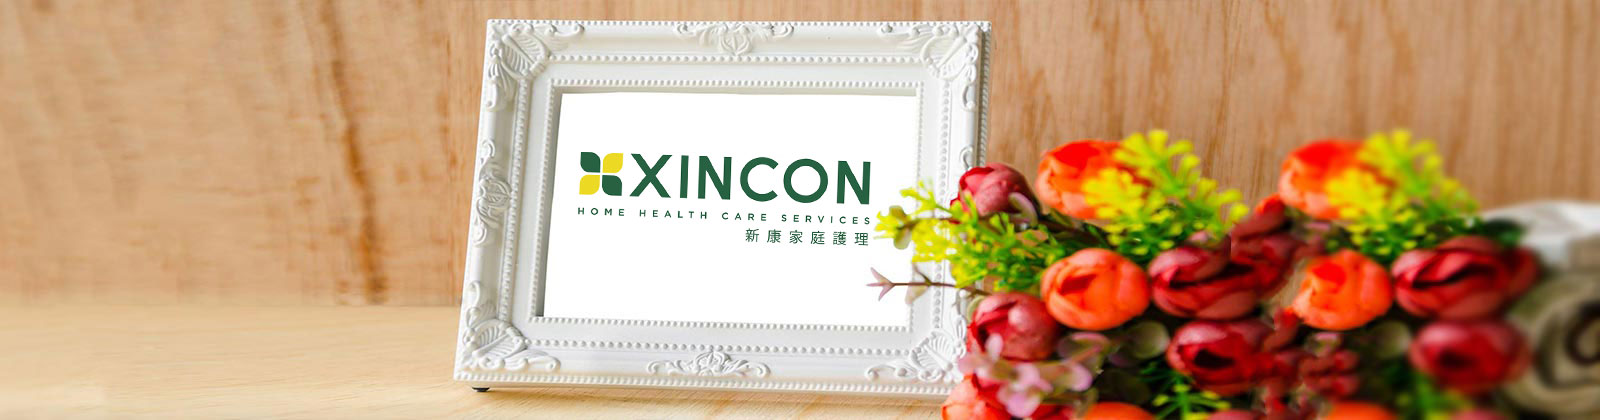 Xincon Patient Caregiver Gallery